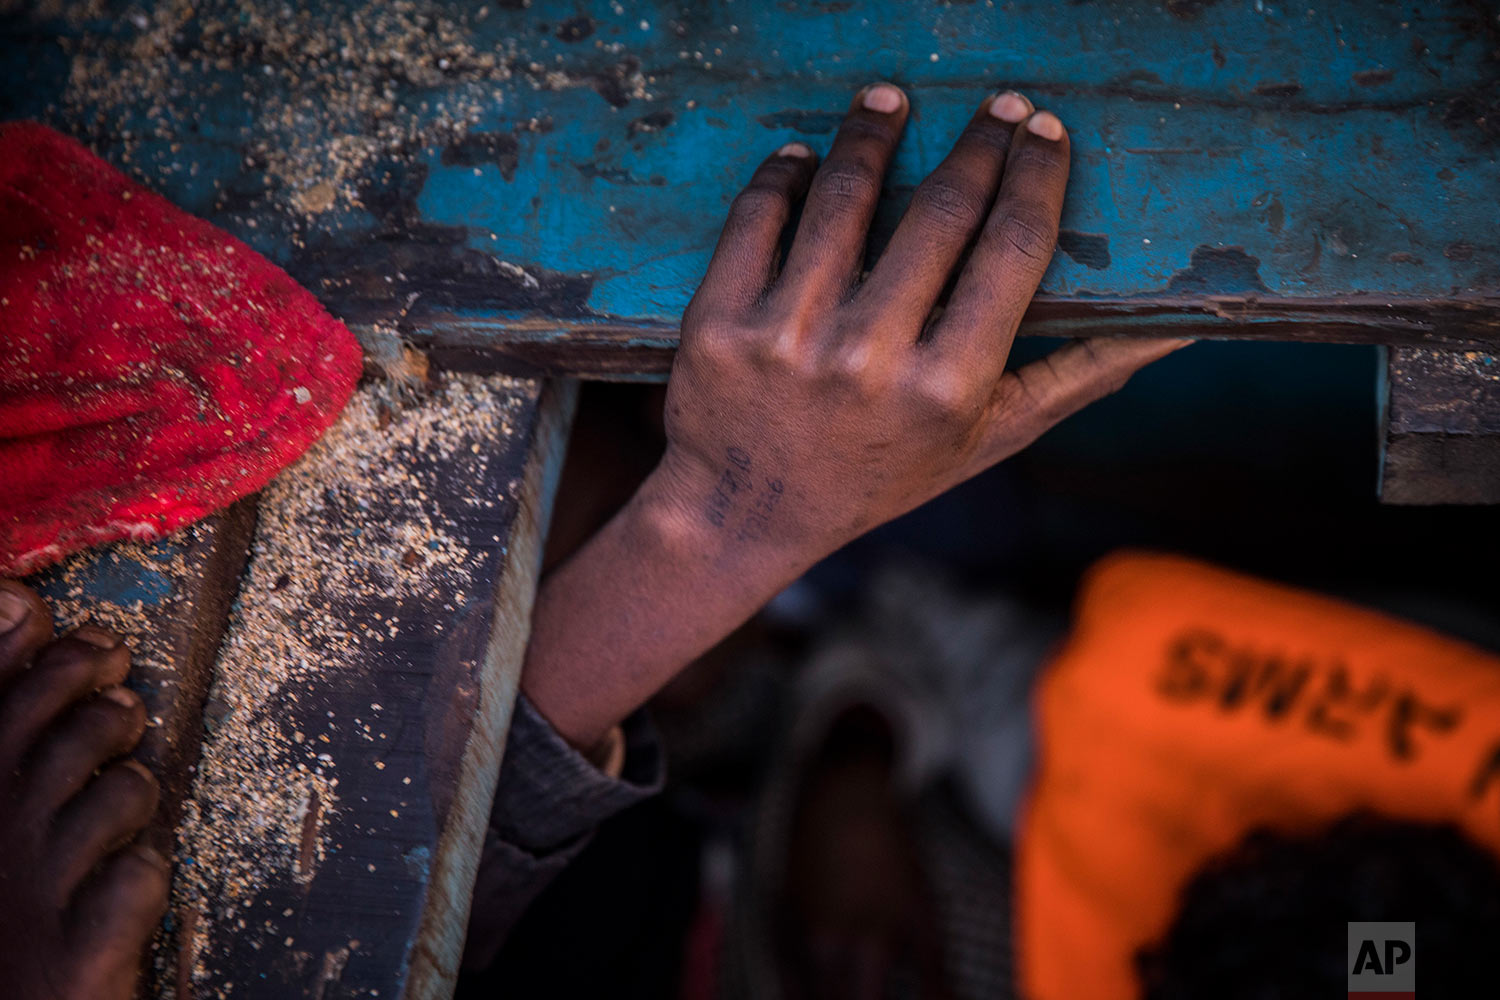 In this Tuesday, Jan. 16, 2018 photo, a boy from Eritrea tries to leave the lower deck of a wooden boat with 450 people on board, as they were trying to leave the Libyan coast and reach European soil, 34 miles north of Kasr-El-Karabulli, Libya. (AP Photo/Santi Palacios)